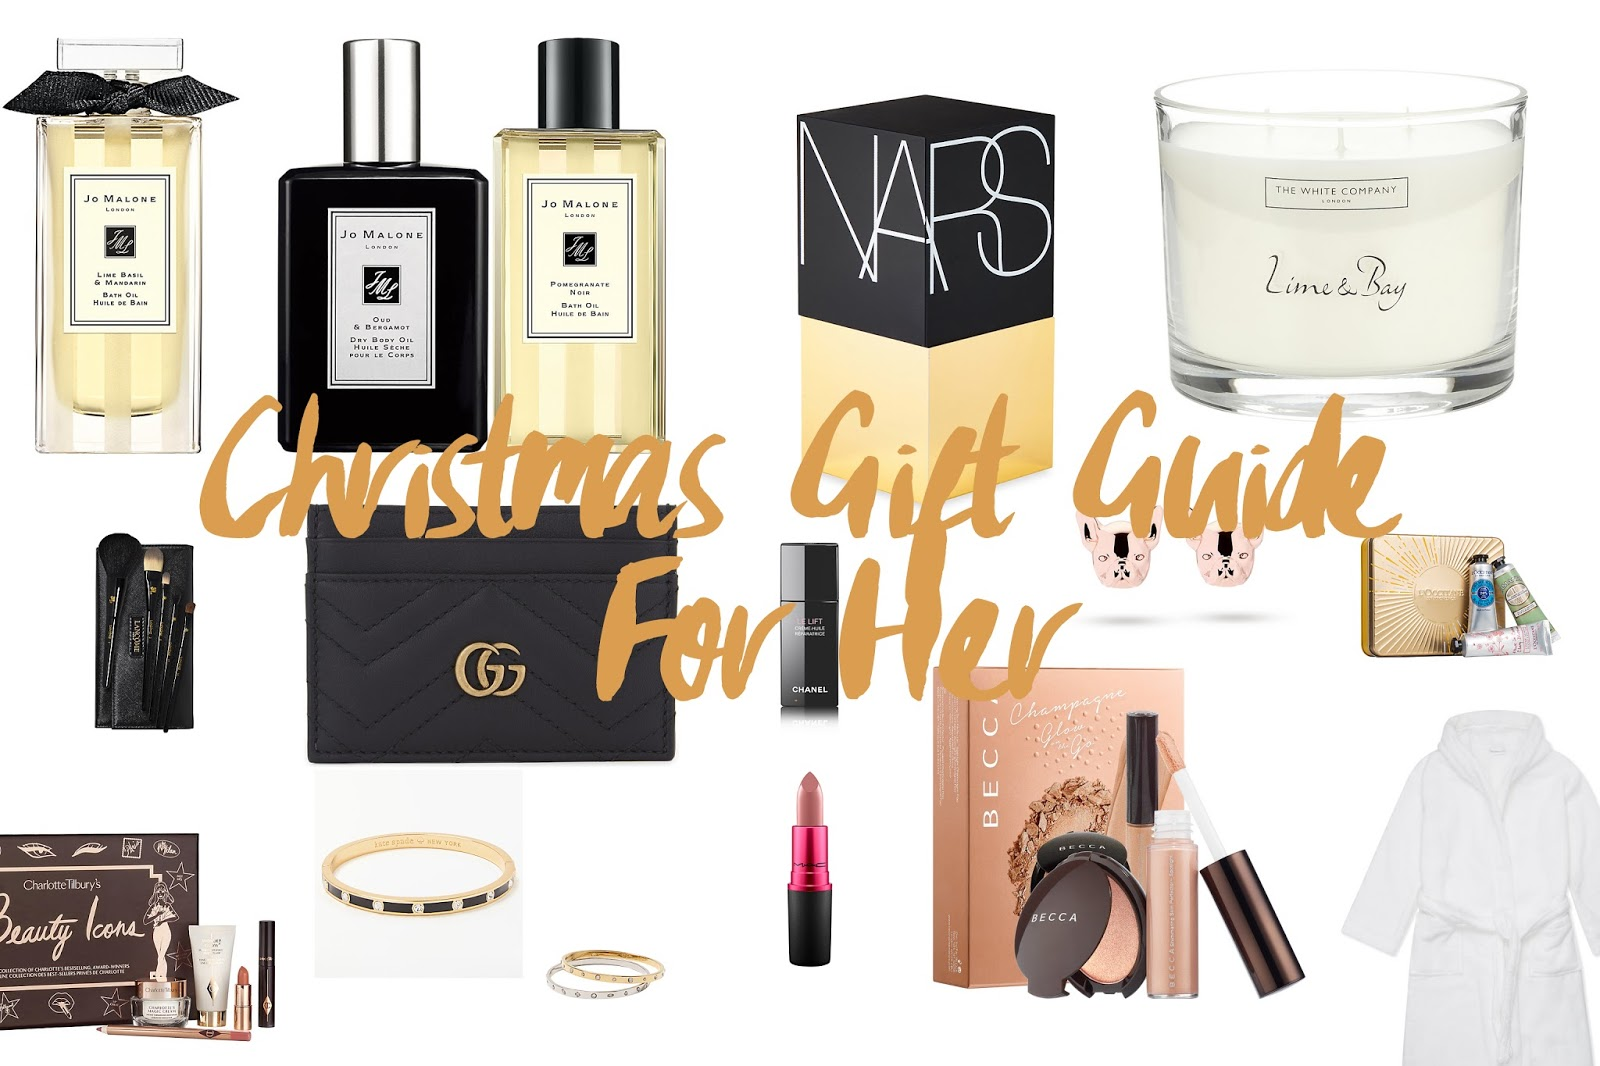 Gift Guide for her christmas 2017 luxury under 100 pound for mum for grandma